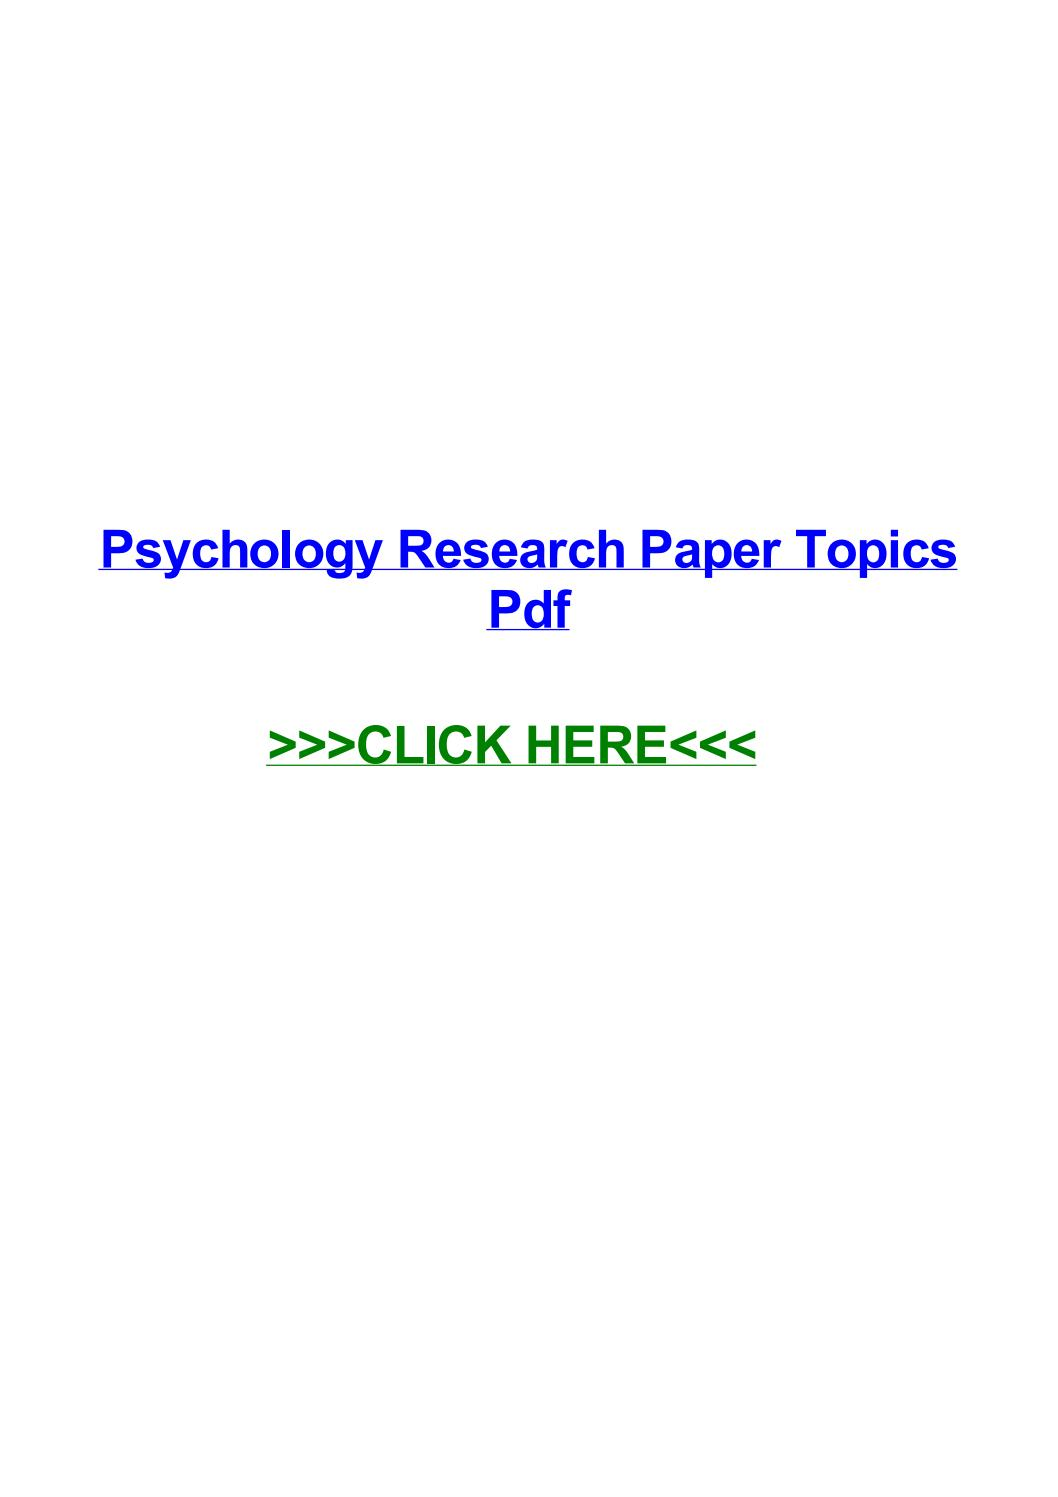 017 Page 1 Research Paper Psychology Striking Topics On Dreams Depression For High School Students Full